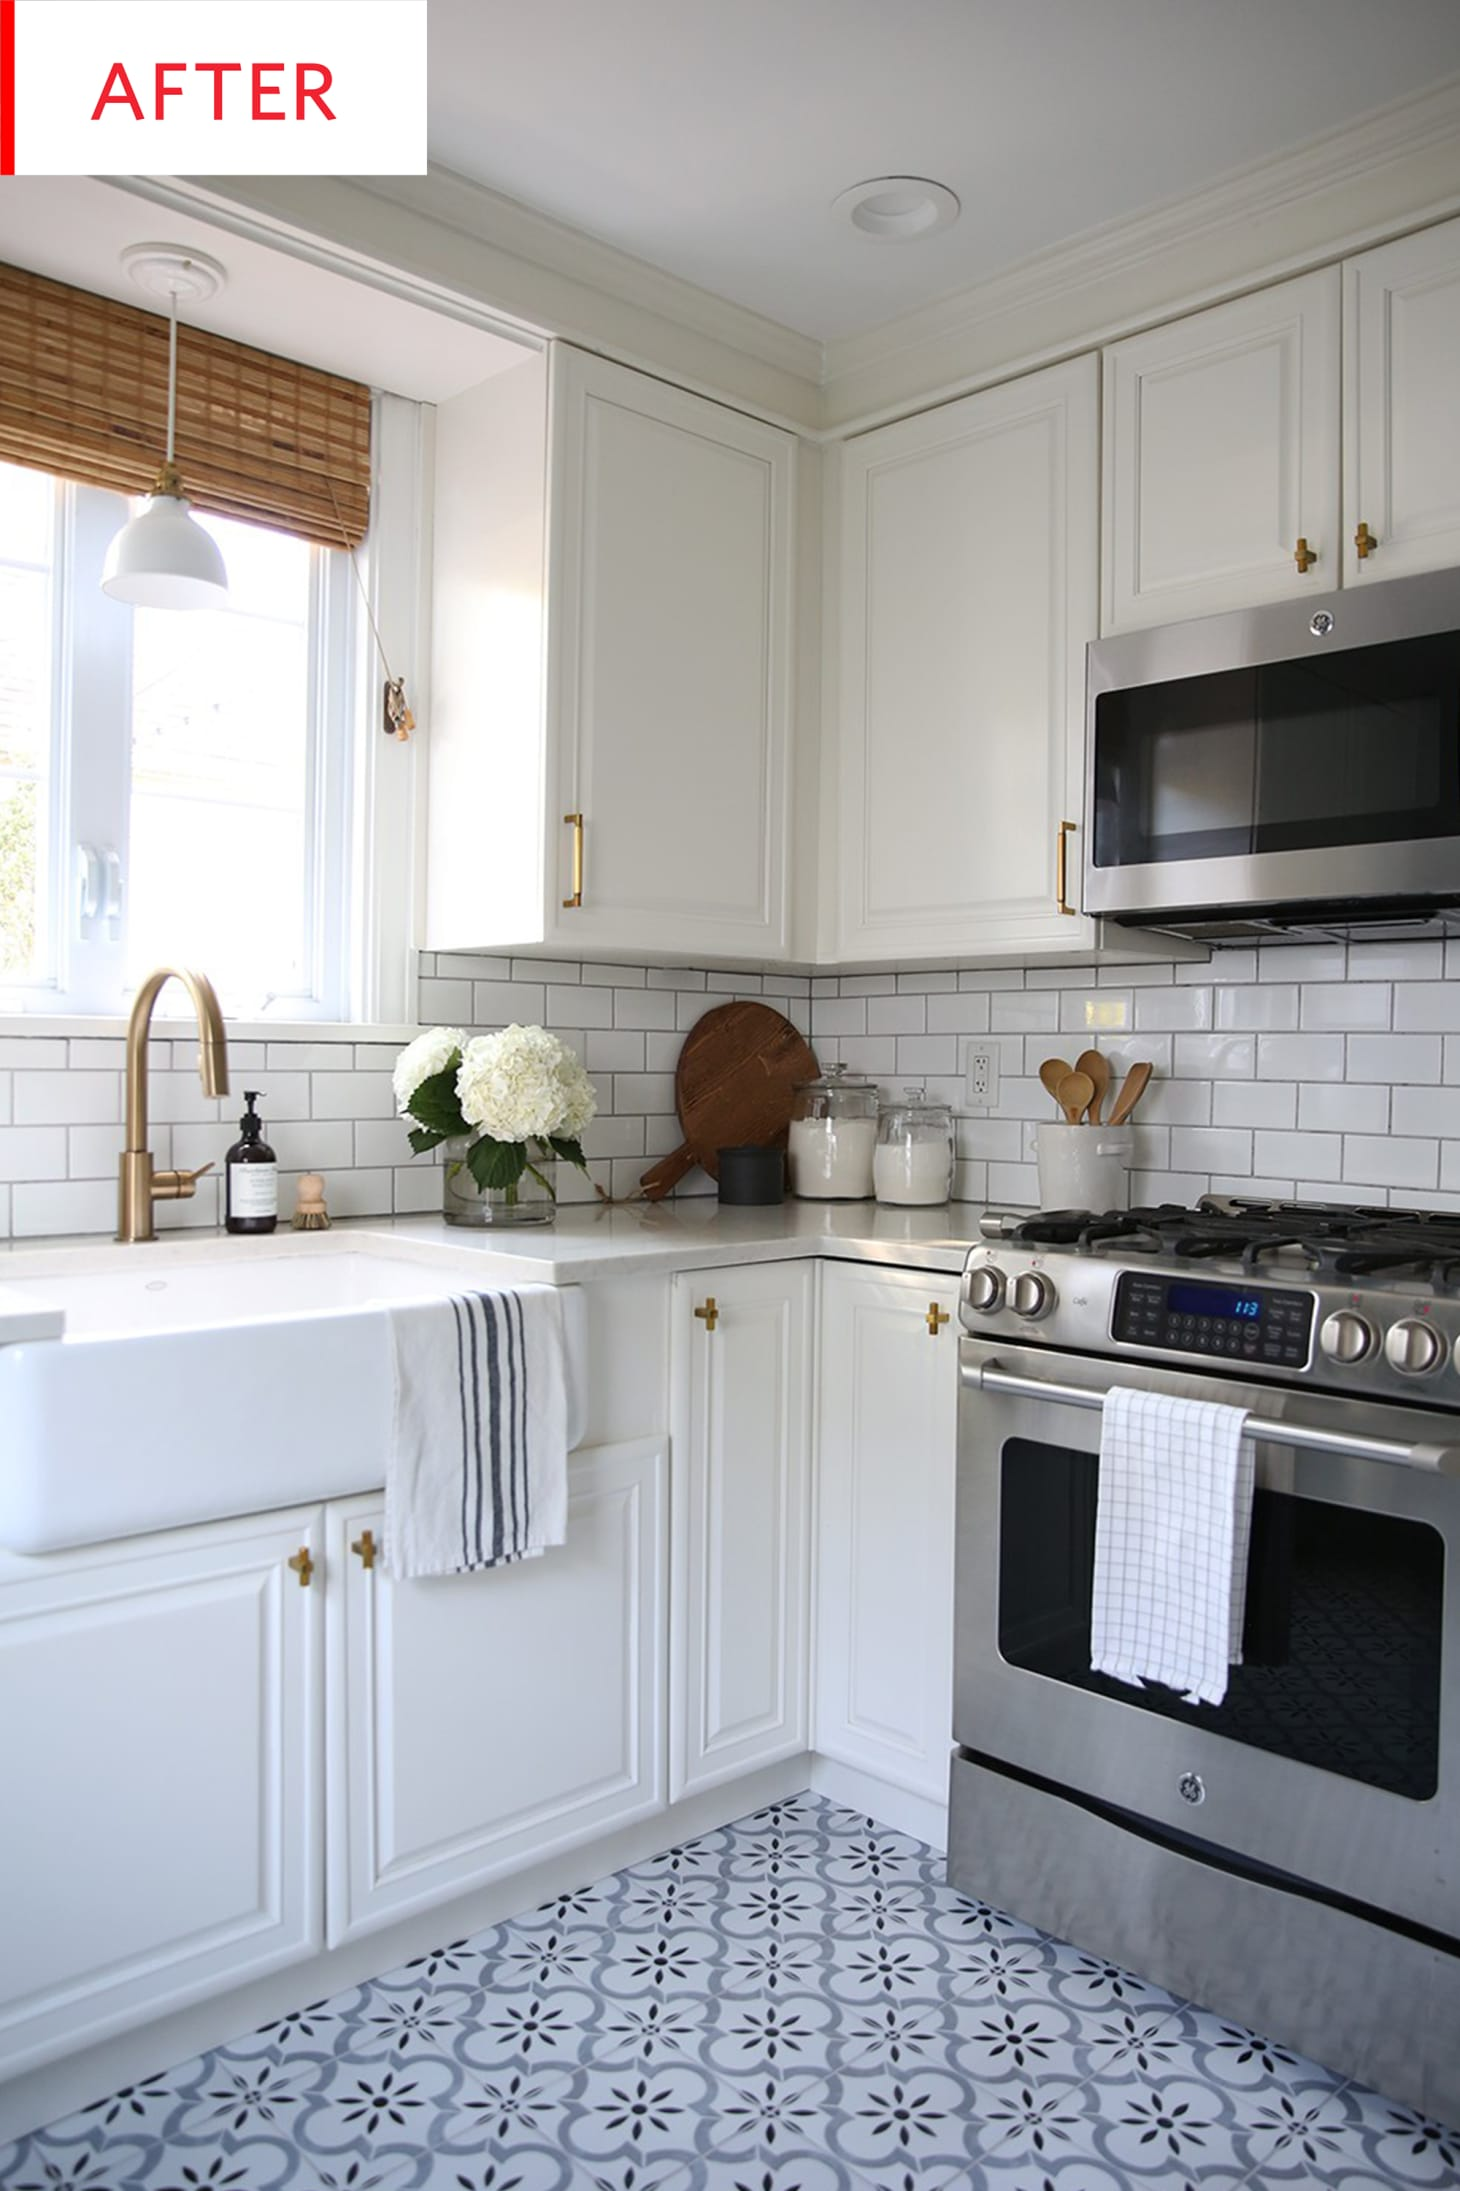 How to Update Old White Kitchen Cabinets - Photos ...